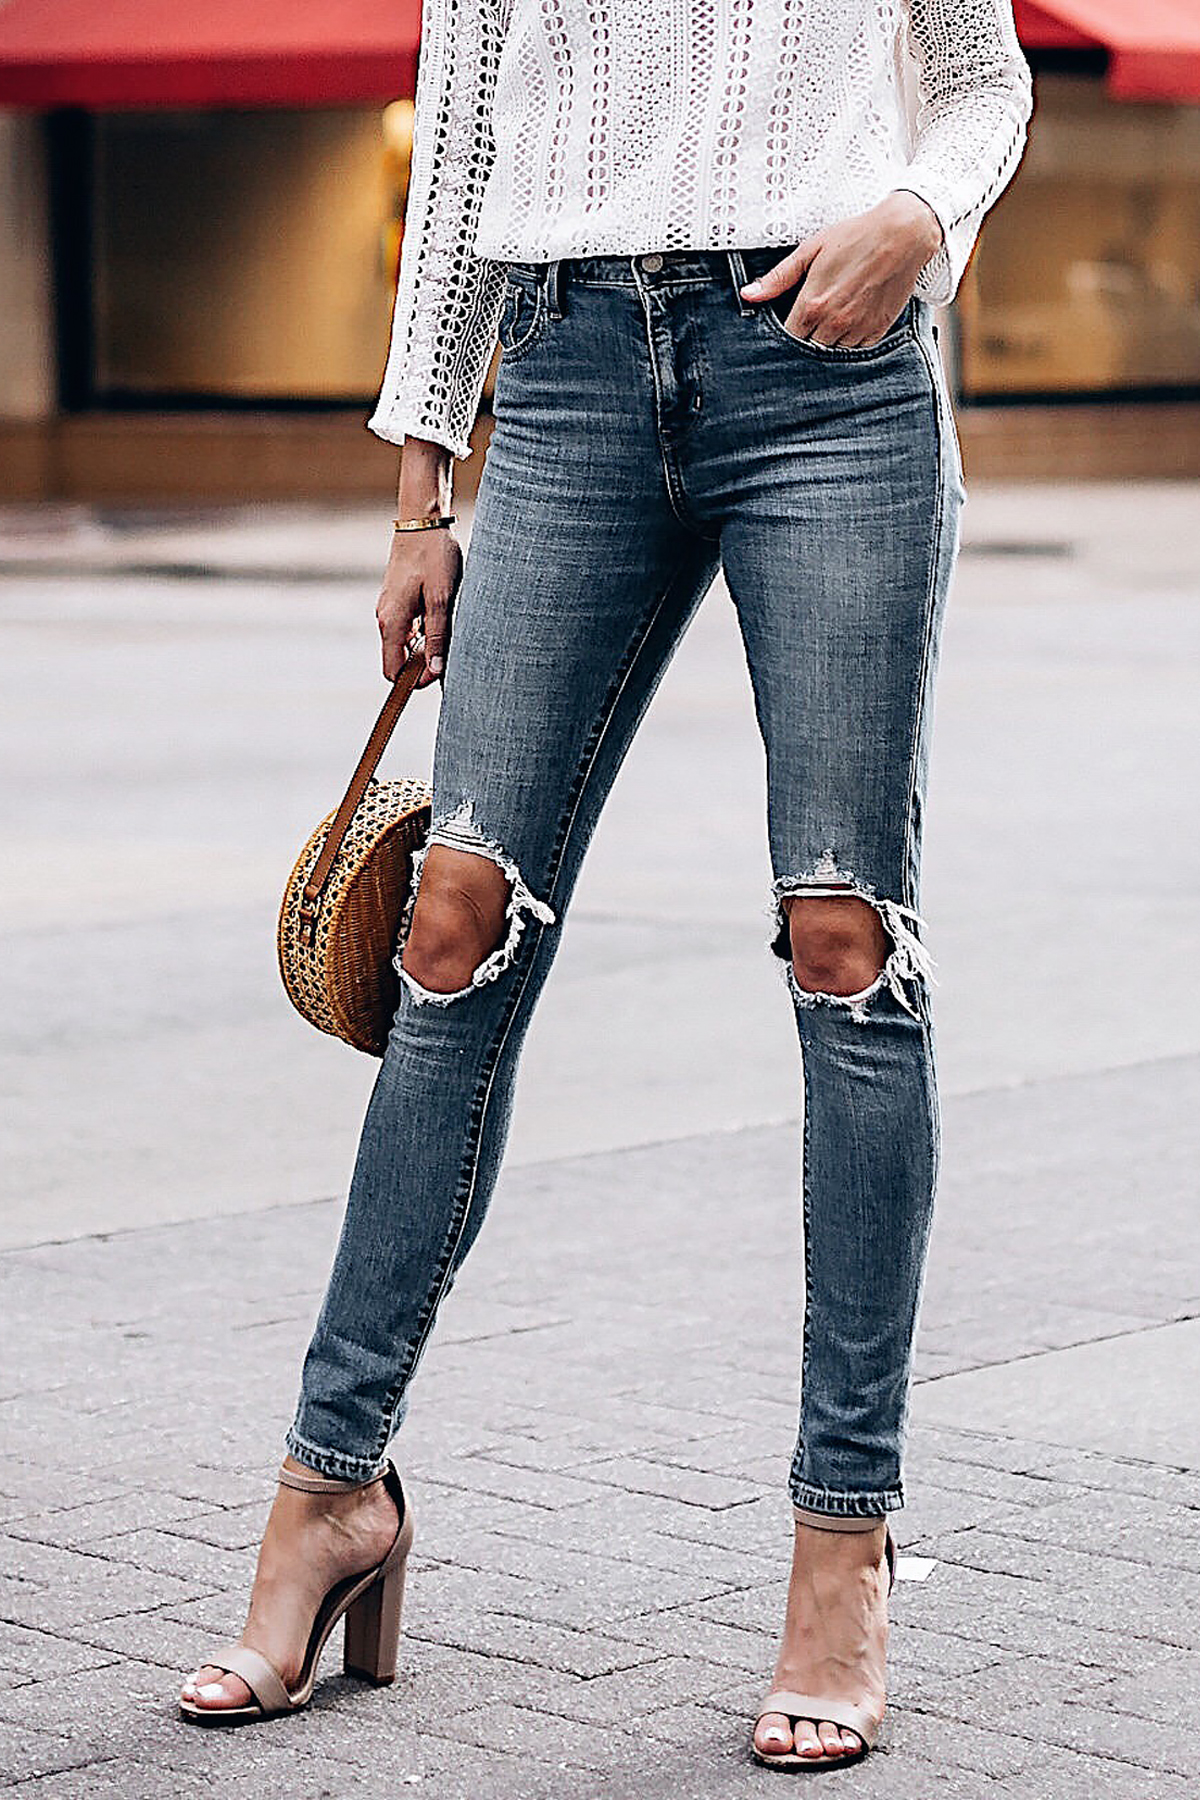 Woman Wearing Fashion Jackson Levis 721 Denim Ripped Skinny Jeans Tan Ankle Strap Heeled Sandals Fashion Jackson San Diego Fashion Blogger Street Style